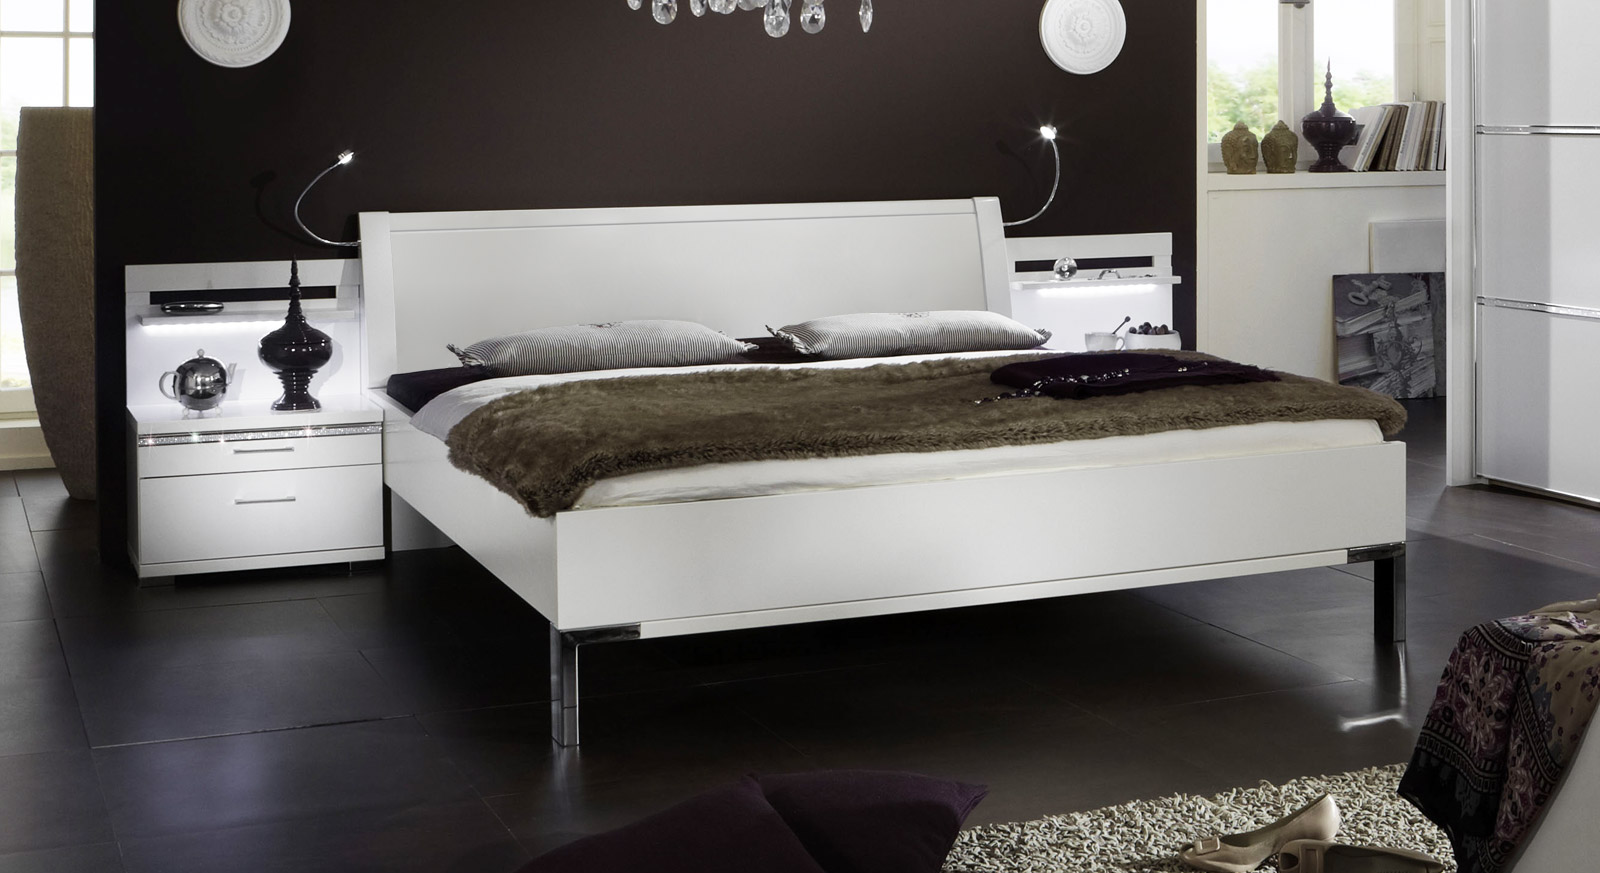 bett mit kunstleder kopfteil strasssteinen huddersfield. Black Bedroom Furniture Sets. Home Design Ideas